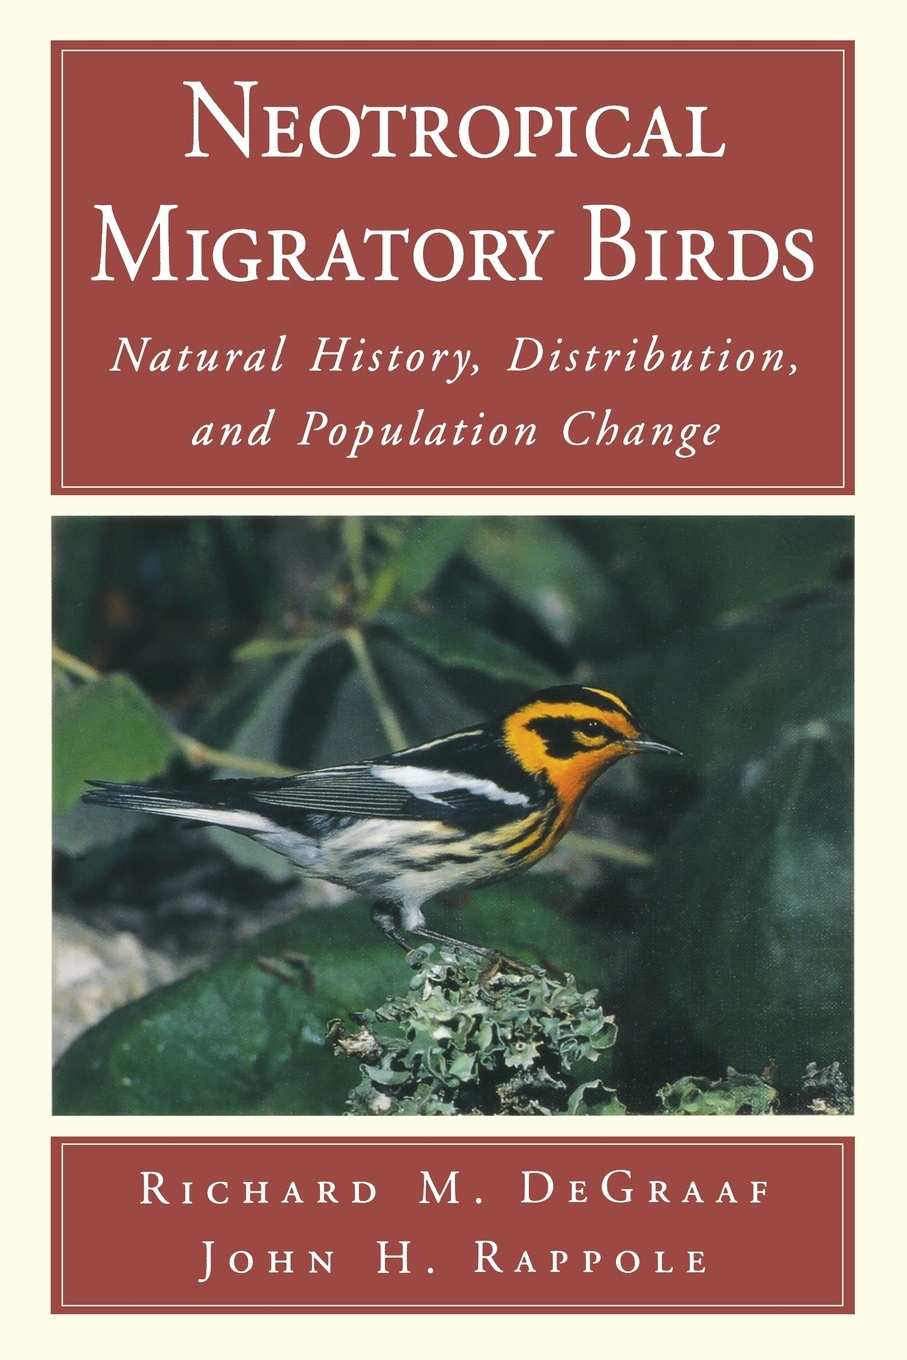 Фото - Richard M DeGraaf, John H Rappole Neotropical Migratory Birds. Natural History, Distribution, and Population Change william leon dawson the birds of ohio a complete scientific and popular description of the 320 species of birds found in the state volume 2